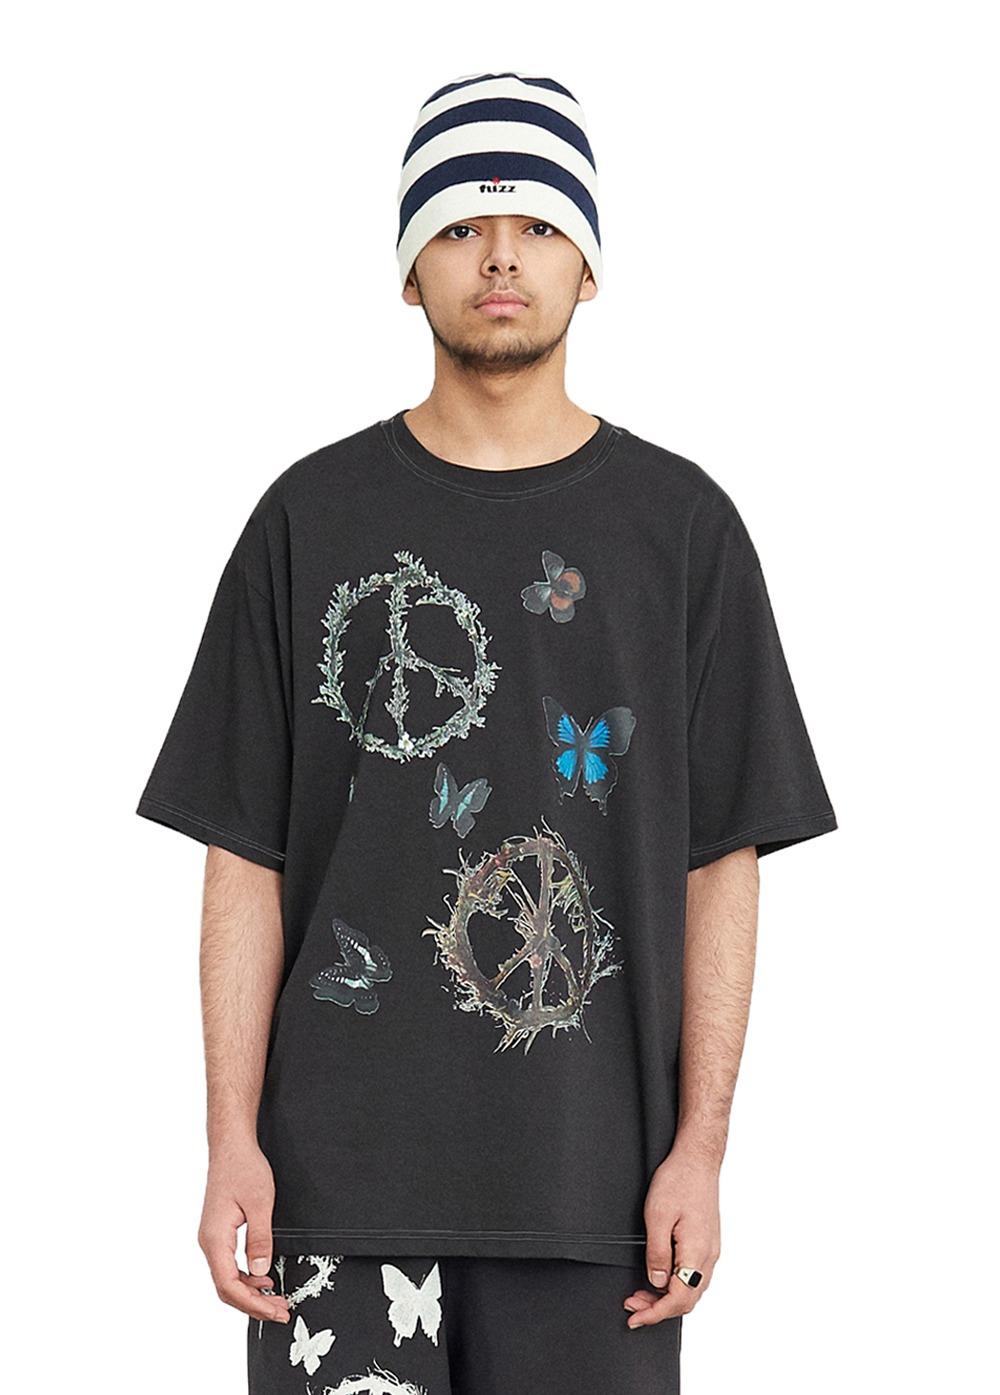 FUZZ PEACE WORLD S/S TEE dark charcoal